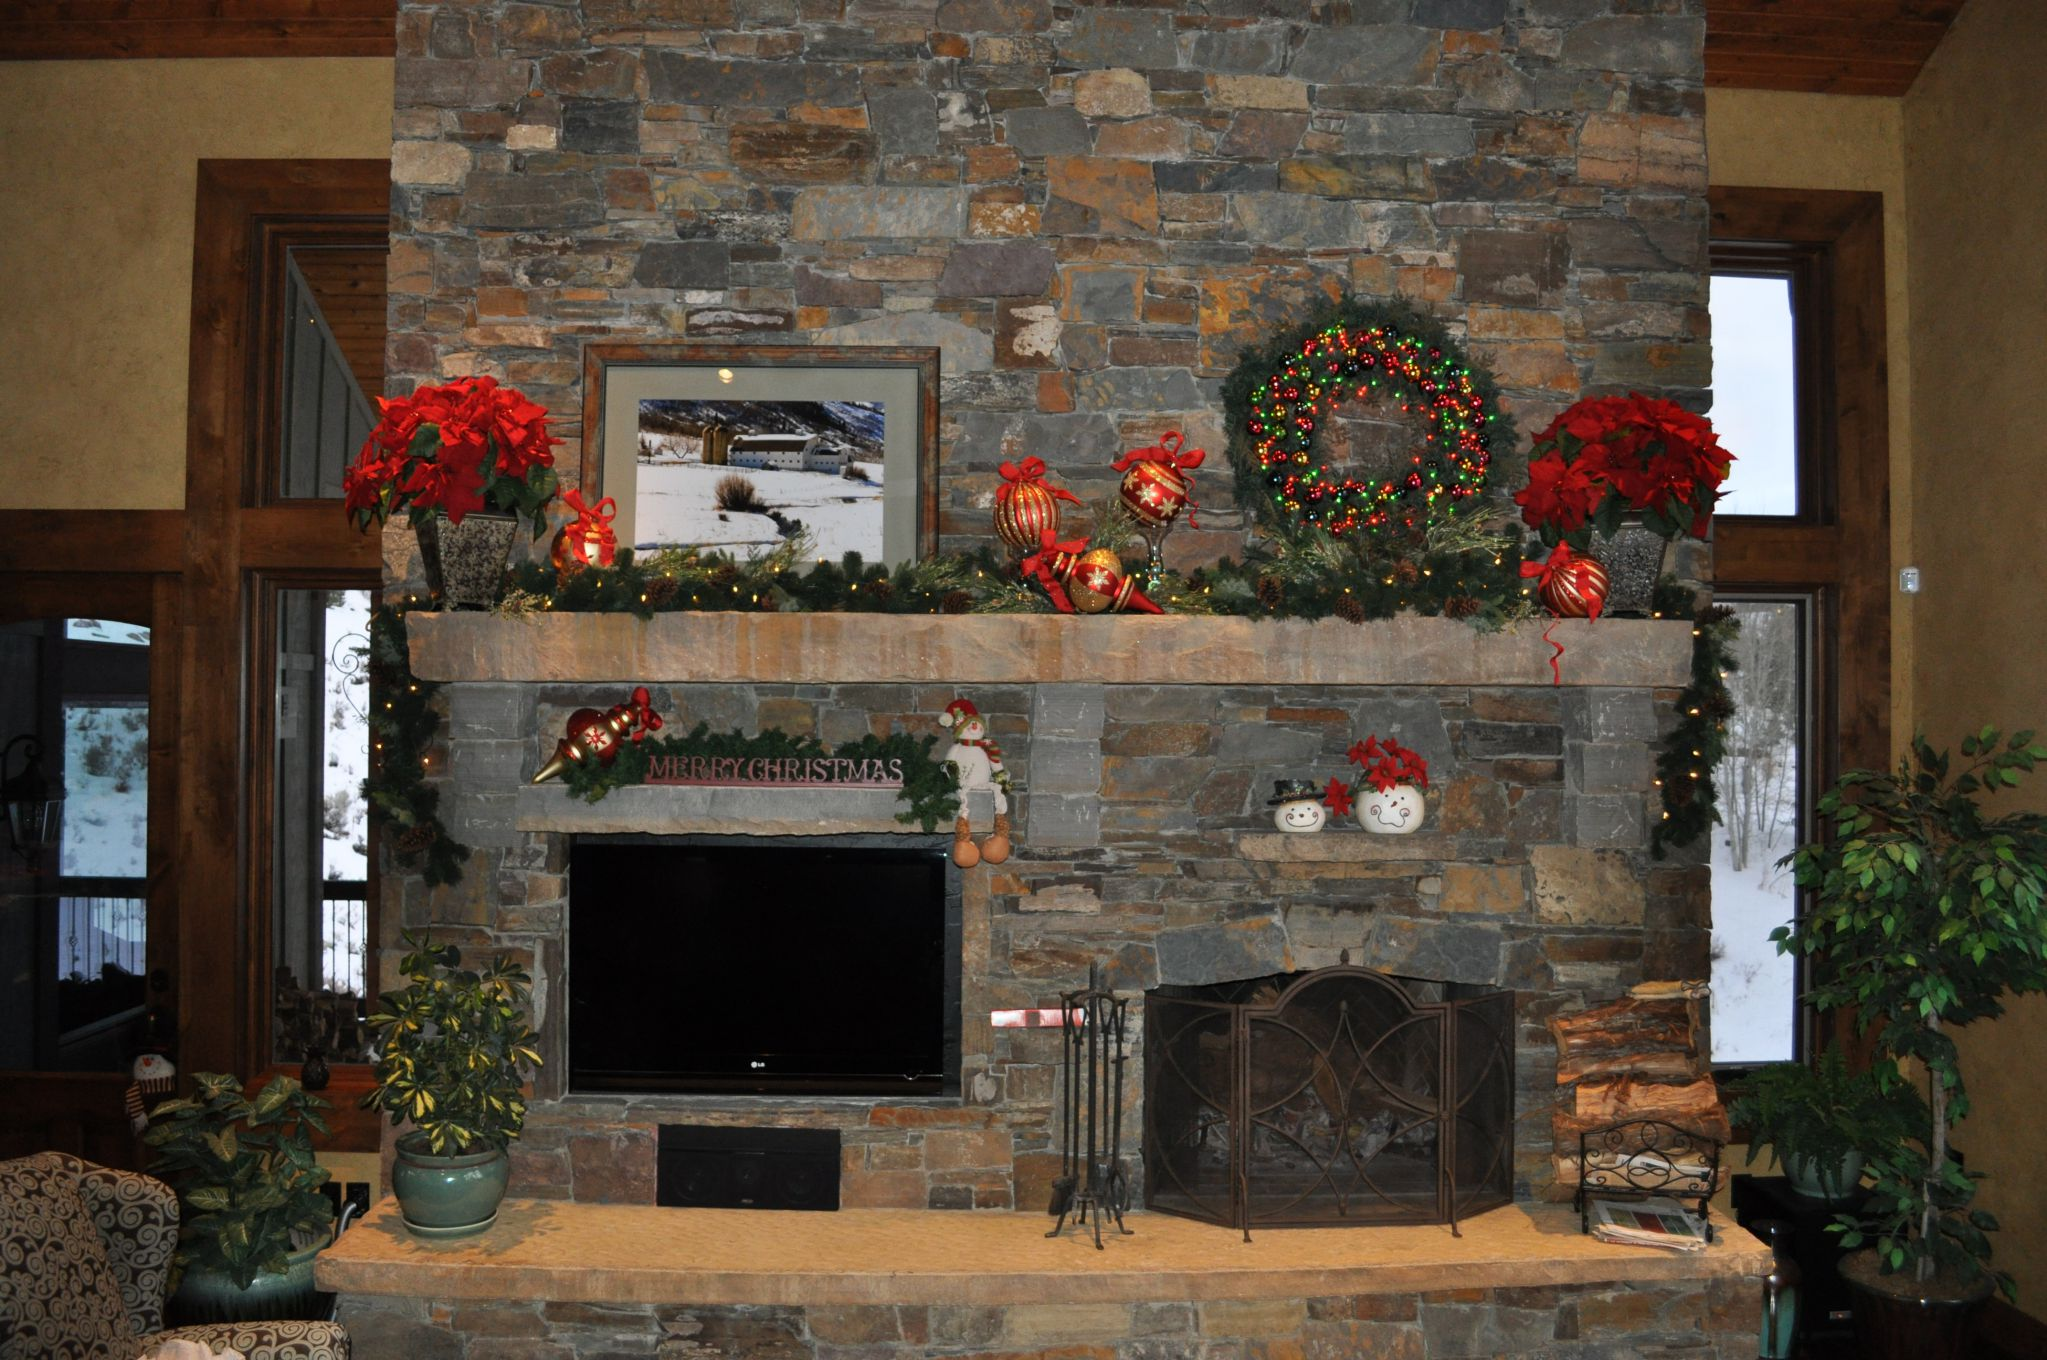 Pluses and minuses easy upgrading and stone fireplace ideas midcityeast - Log decor ideas let the nature in ...